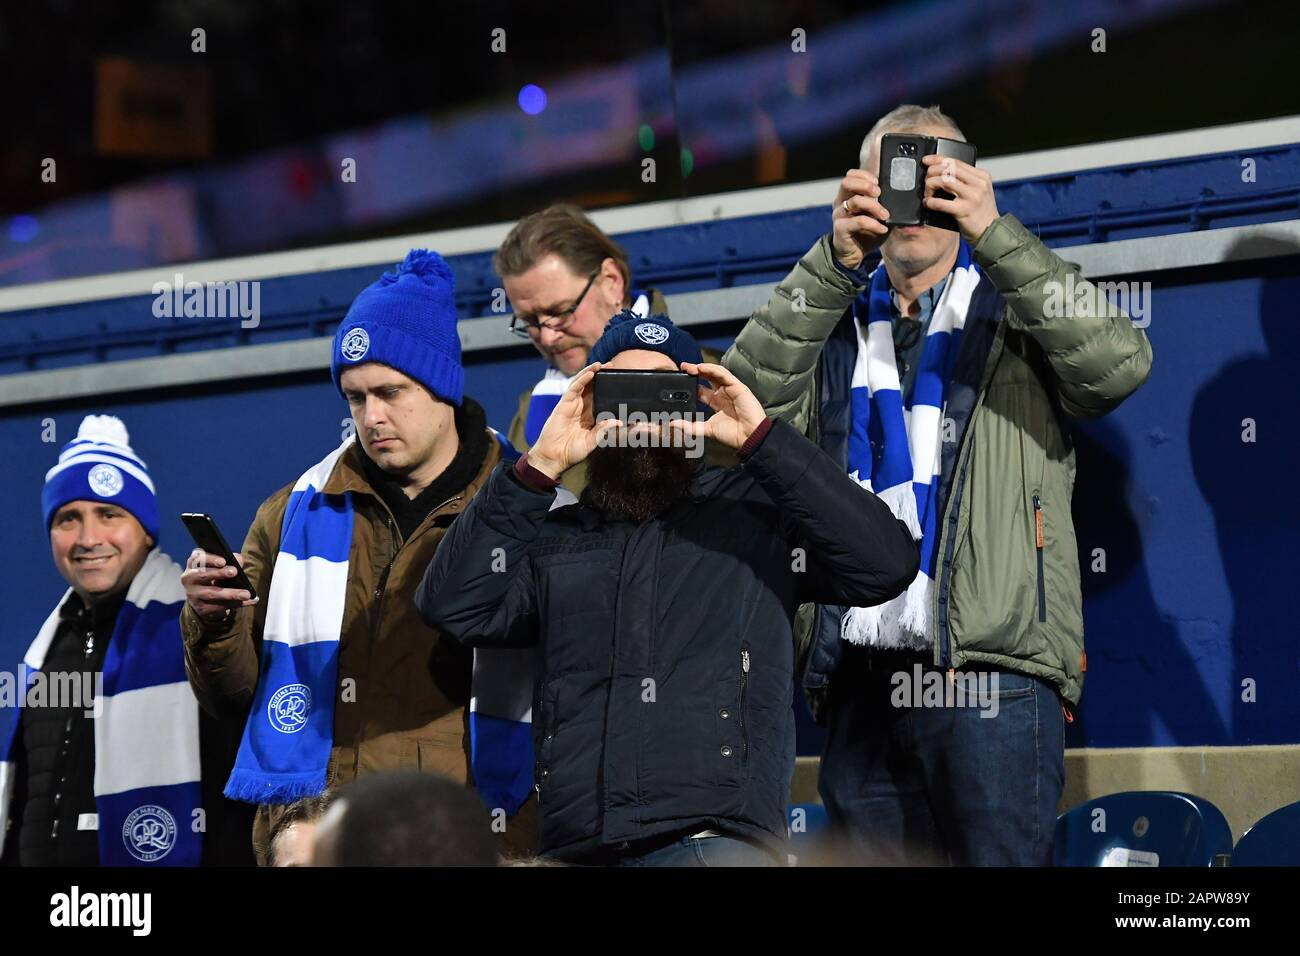 London, UK. 24th Jan 2020. QPR fans taking pictures during the FA Cup 4th Round match between Queens Park Rangers and Sheffield Wednesday at Kiyan Prince Foundation Stadium, London on Friday 24th January 2020. (Credit: Ivan Yordanov | MI News)Photograph may only be used for newspaper and/or magazine editorial purposes, license required for commercial use Credit: MI News & Sport /Alamy Live News Stock Photo